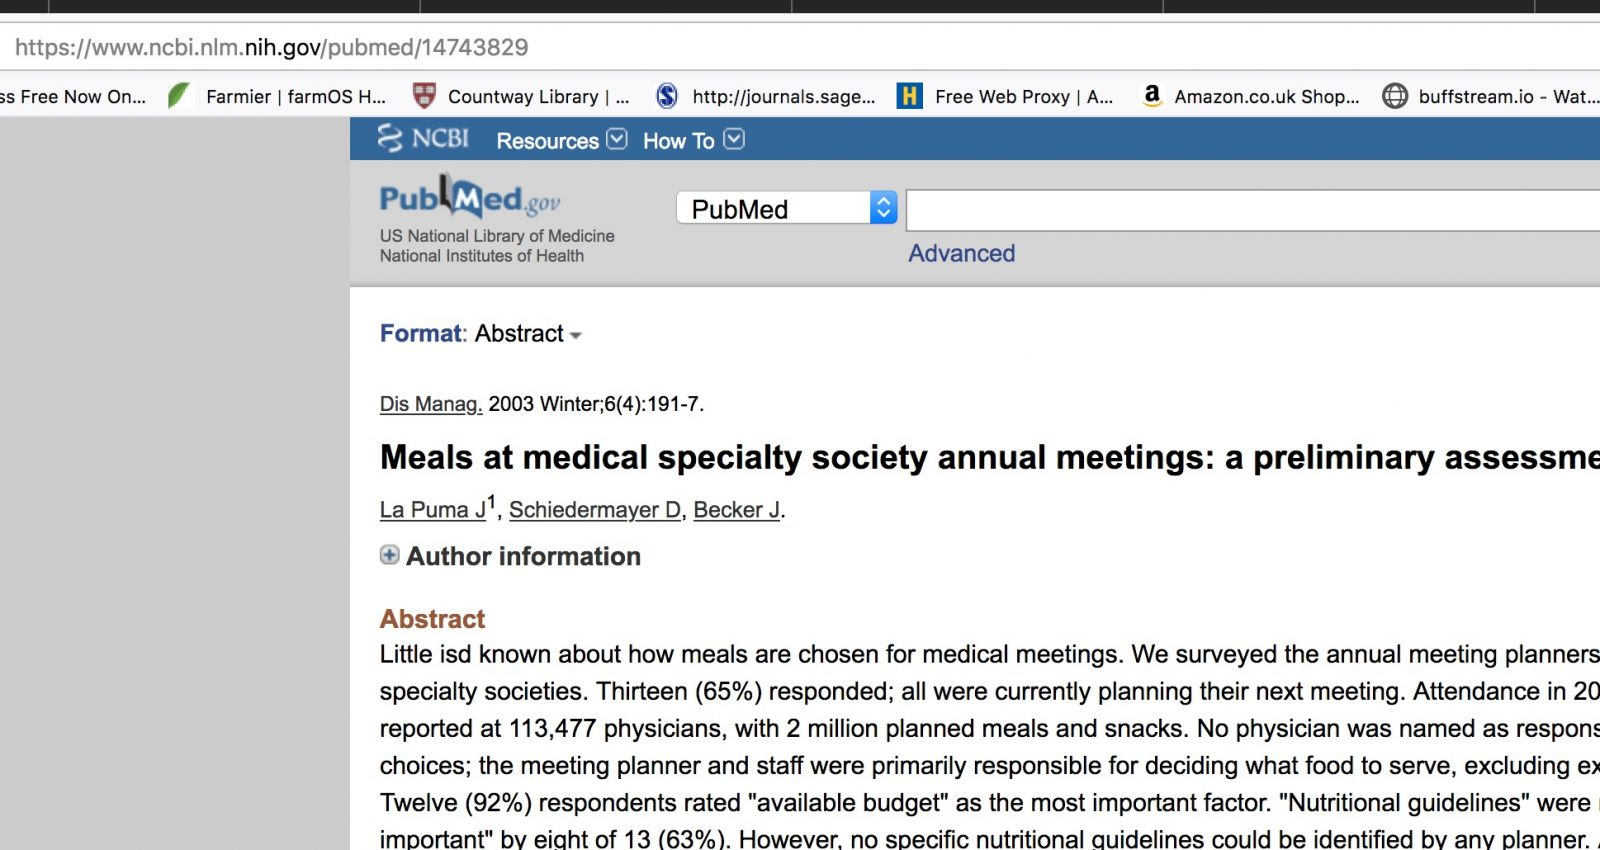 Meals at medical specialty society annual meetings: a preliminary assessment.